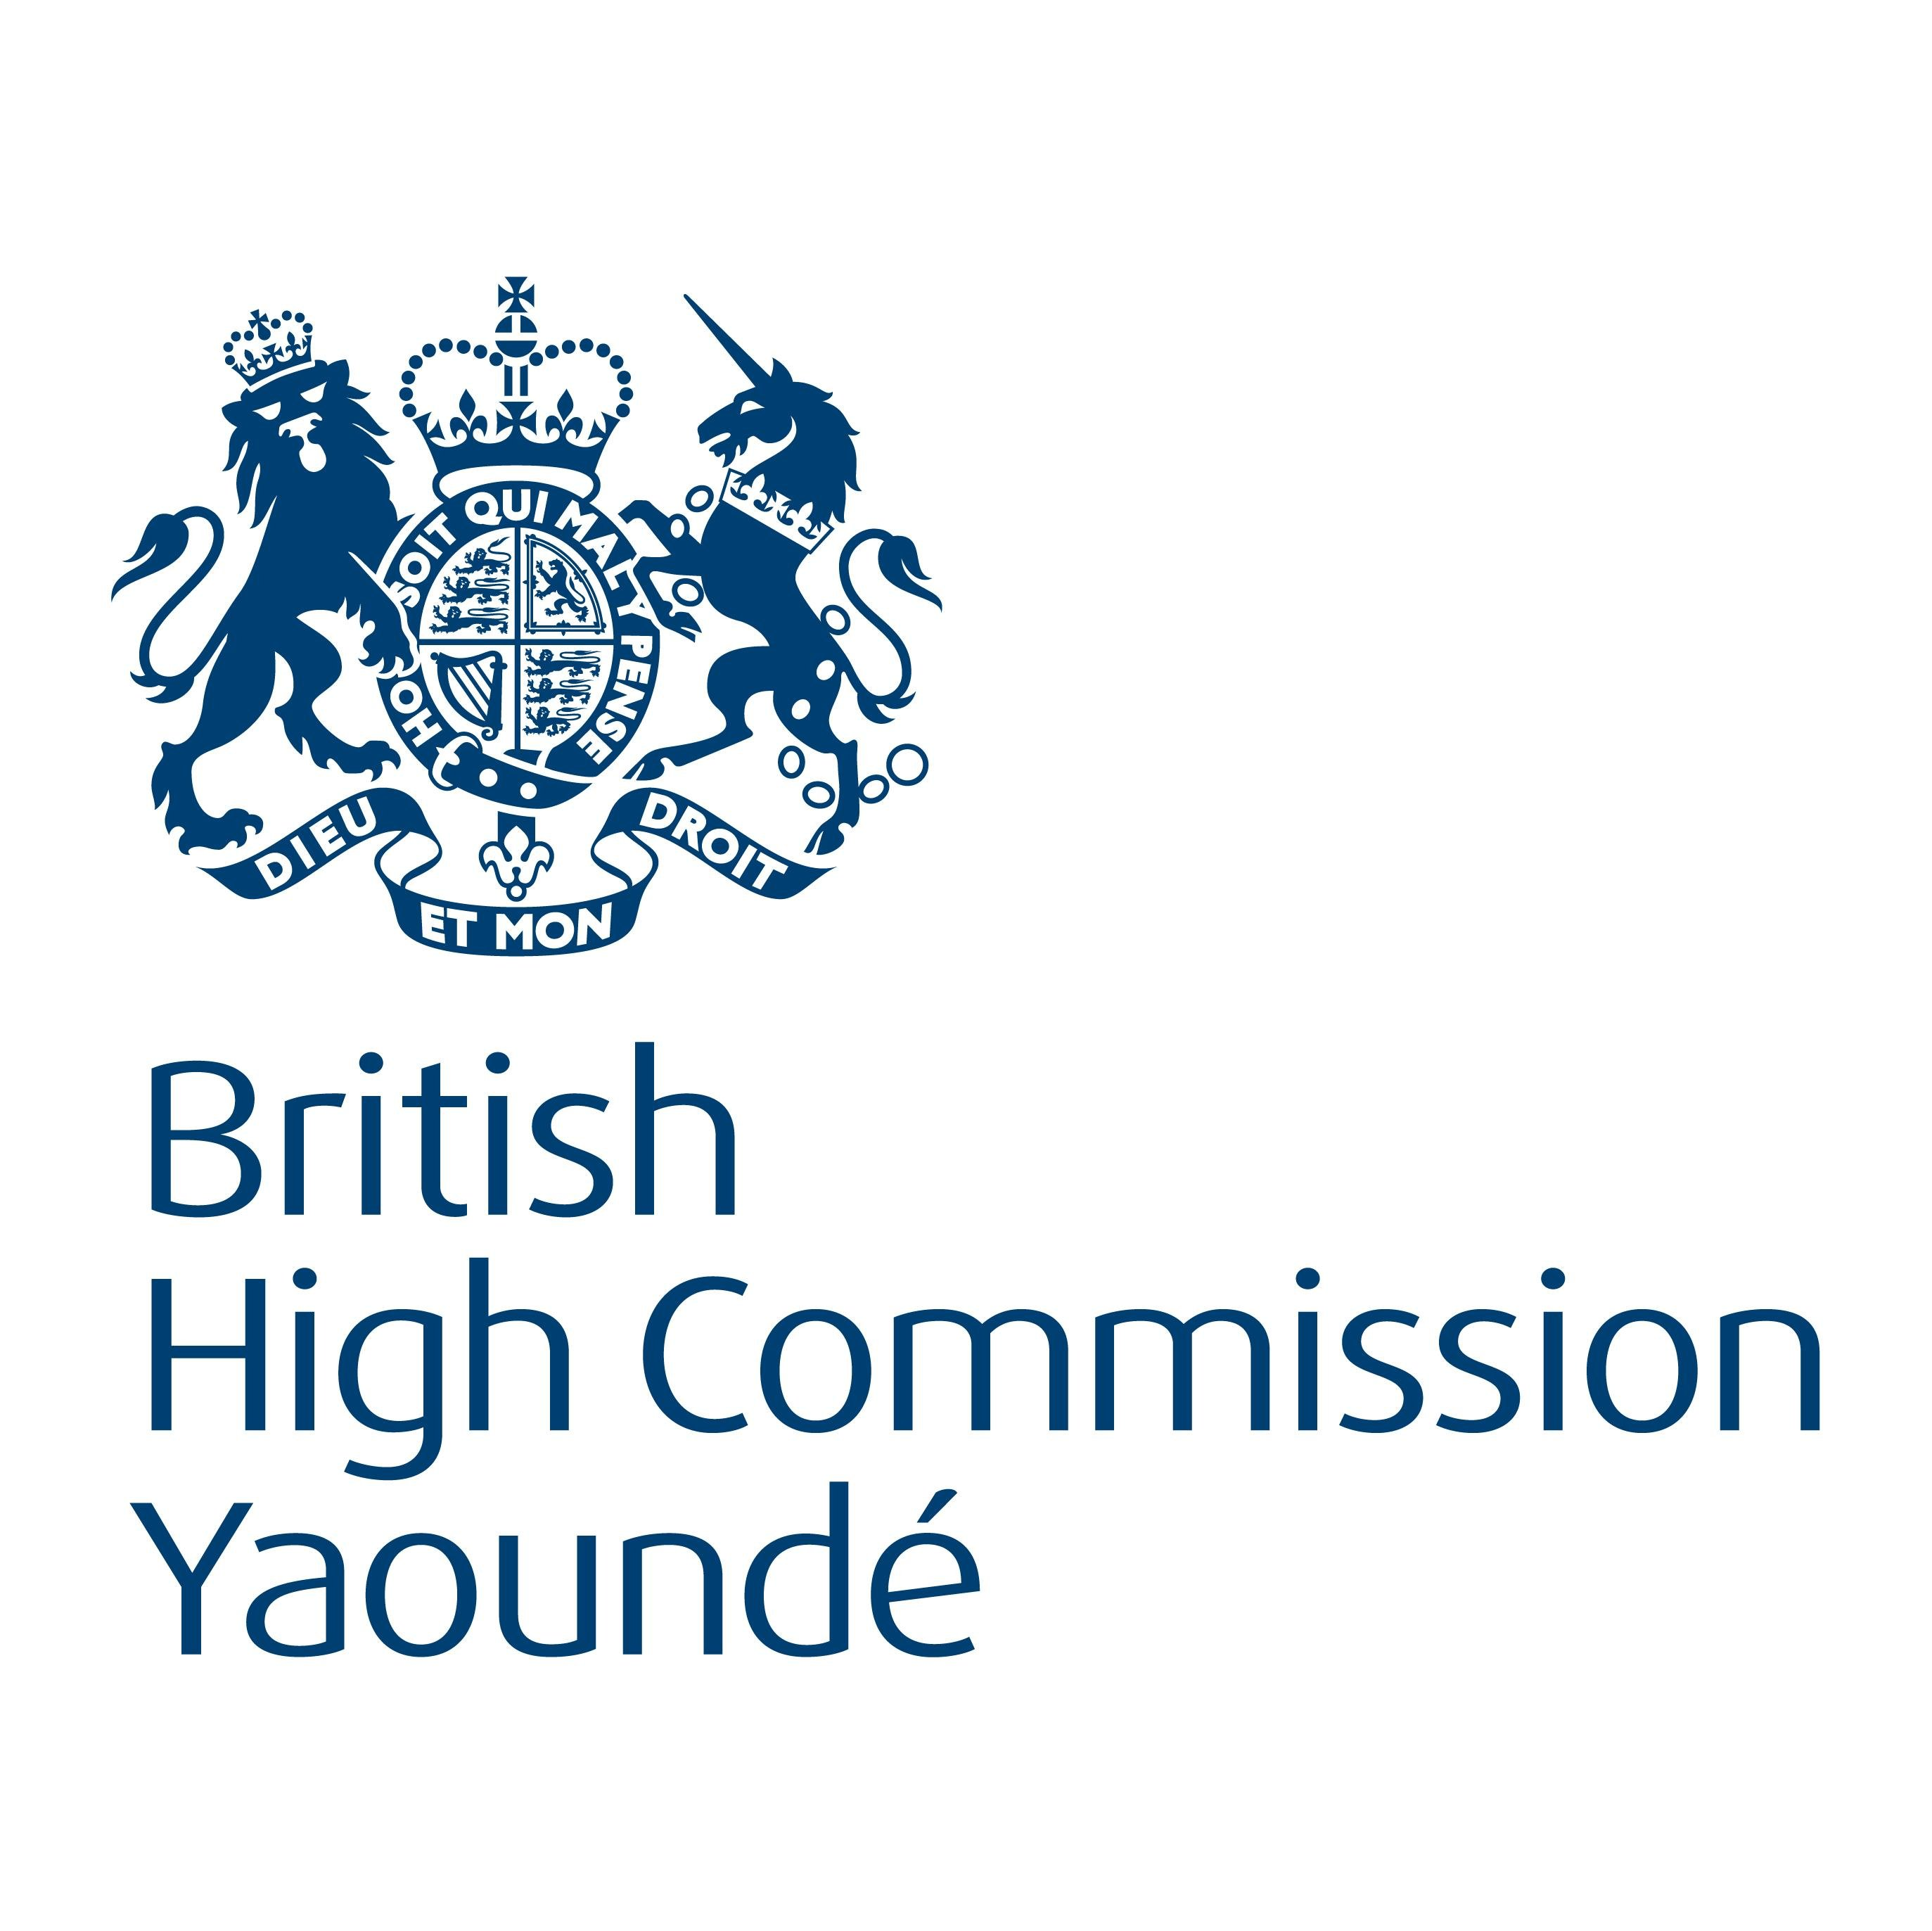 British High Commission - Yaounde